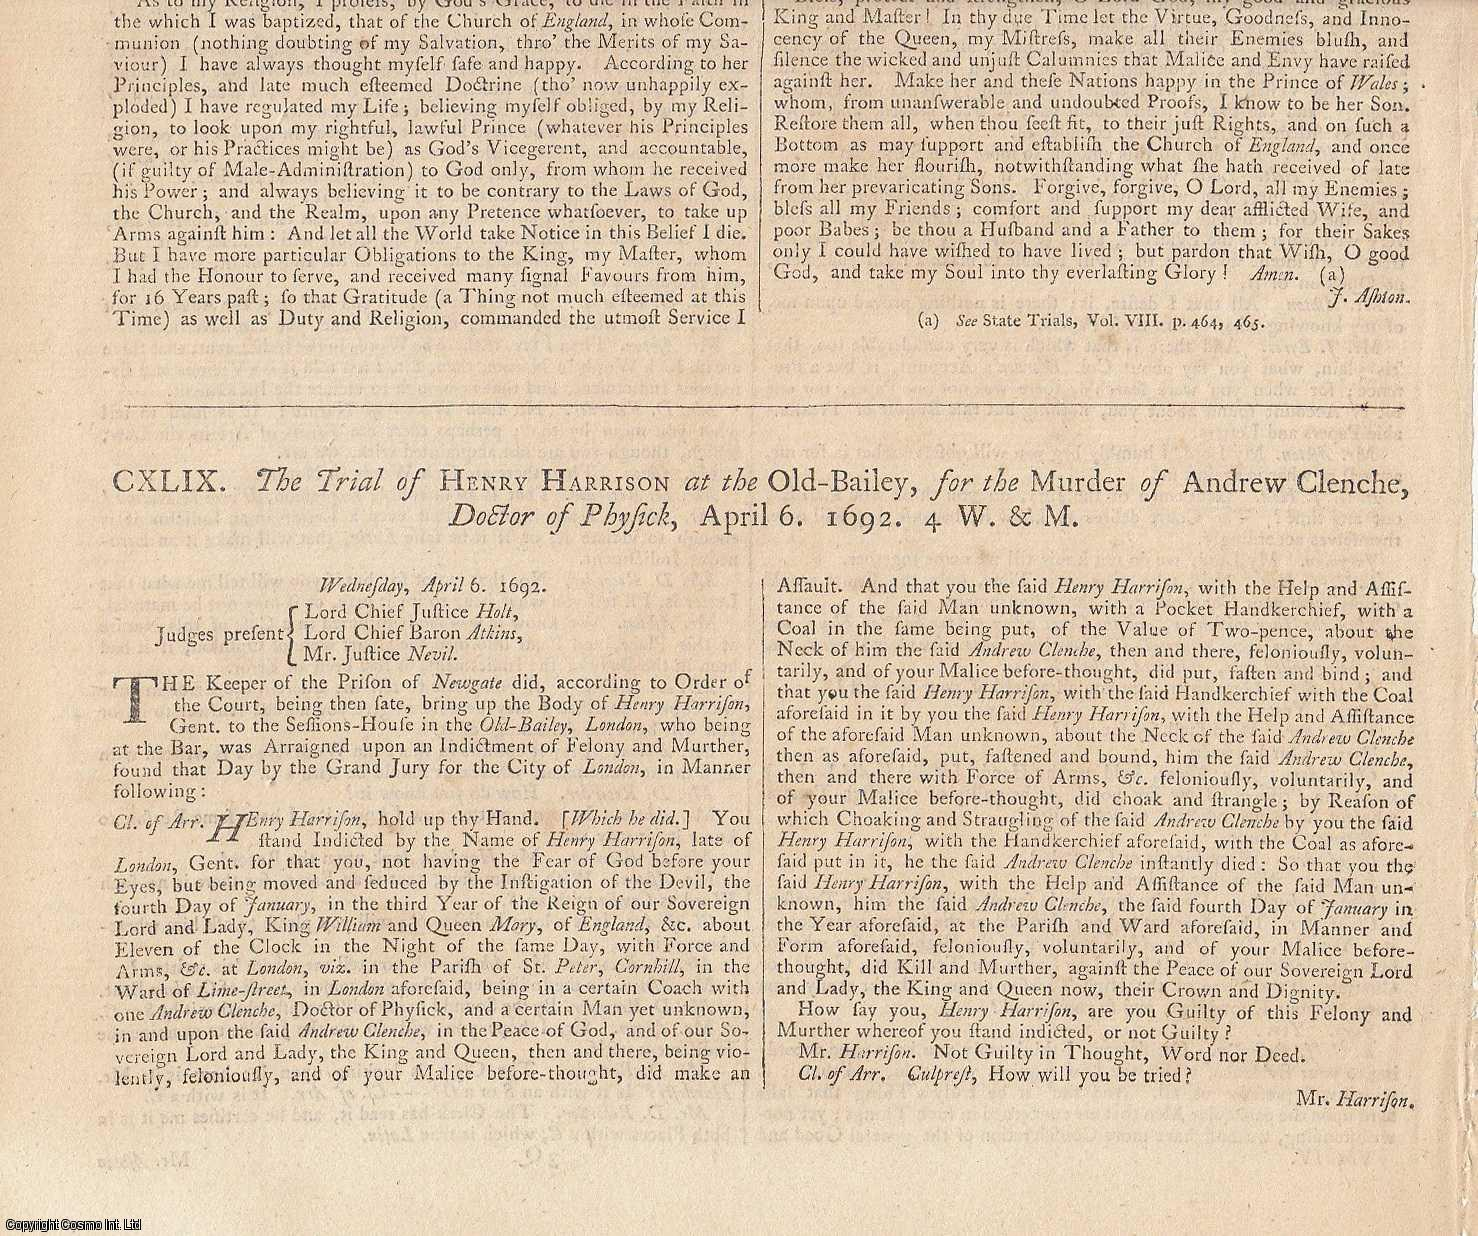 MURDER NOTED BY JOHN EVELYN.  The Trial of Henry Harrison at the Old Bailey, for the Murder of Andrew Clenche, Doctor of Physic, April 6 1692 ALONG WITH The Trial of John Cole, at the Old Bailey, for the Murder of Andrew Clenche, Doctor of Physick, Sept 2 1692., [Trial].